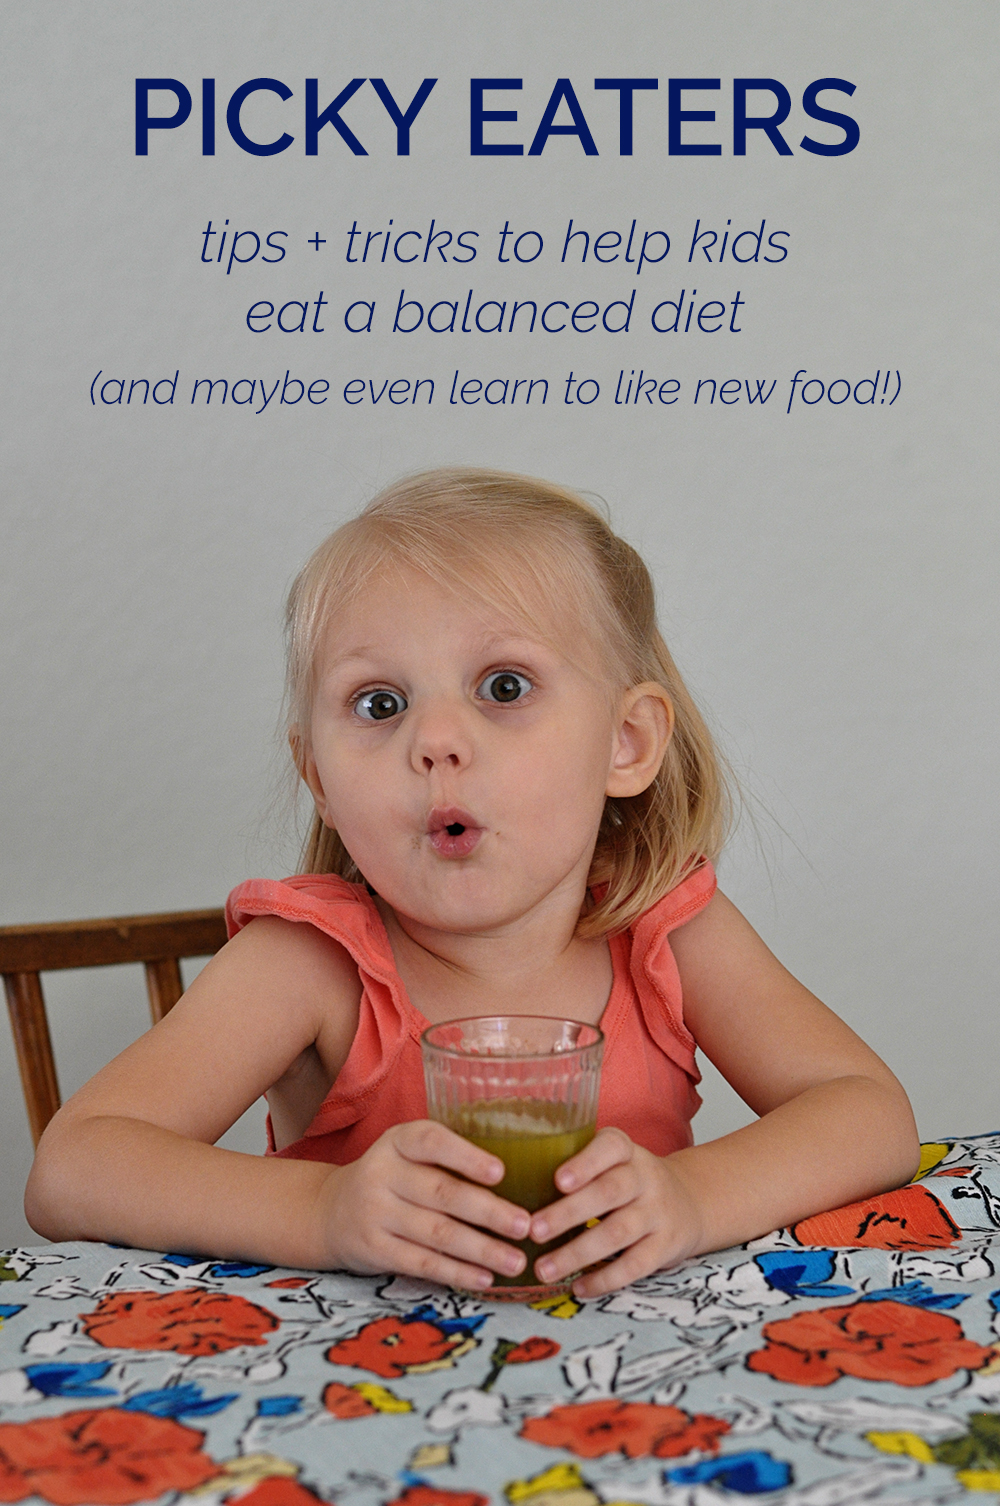 helping a picky eater eat a balanced diet (and maybe learn to like new food!)